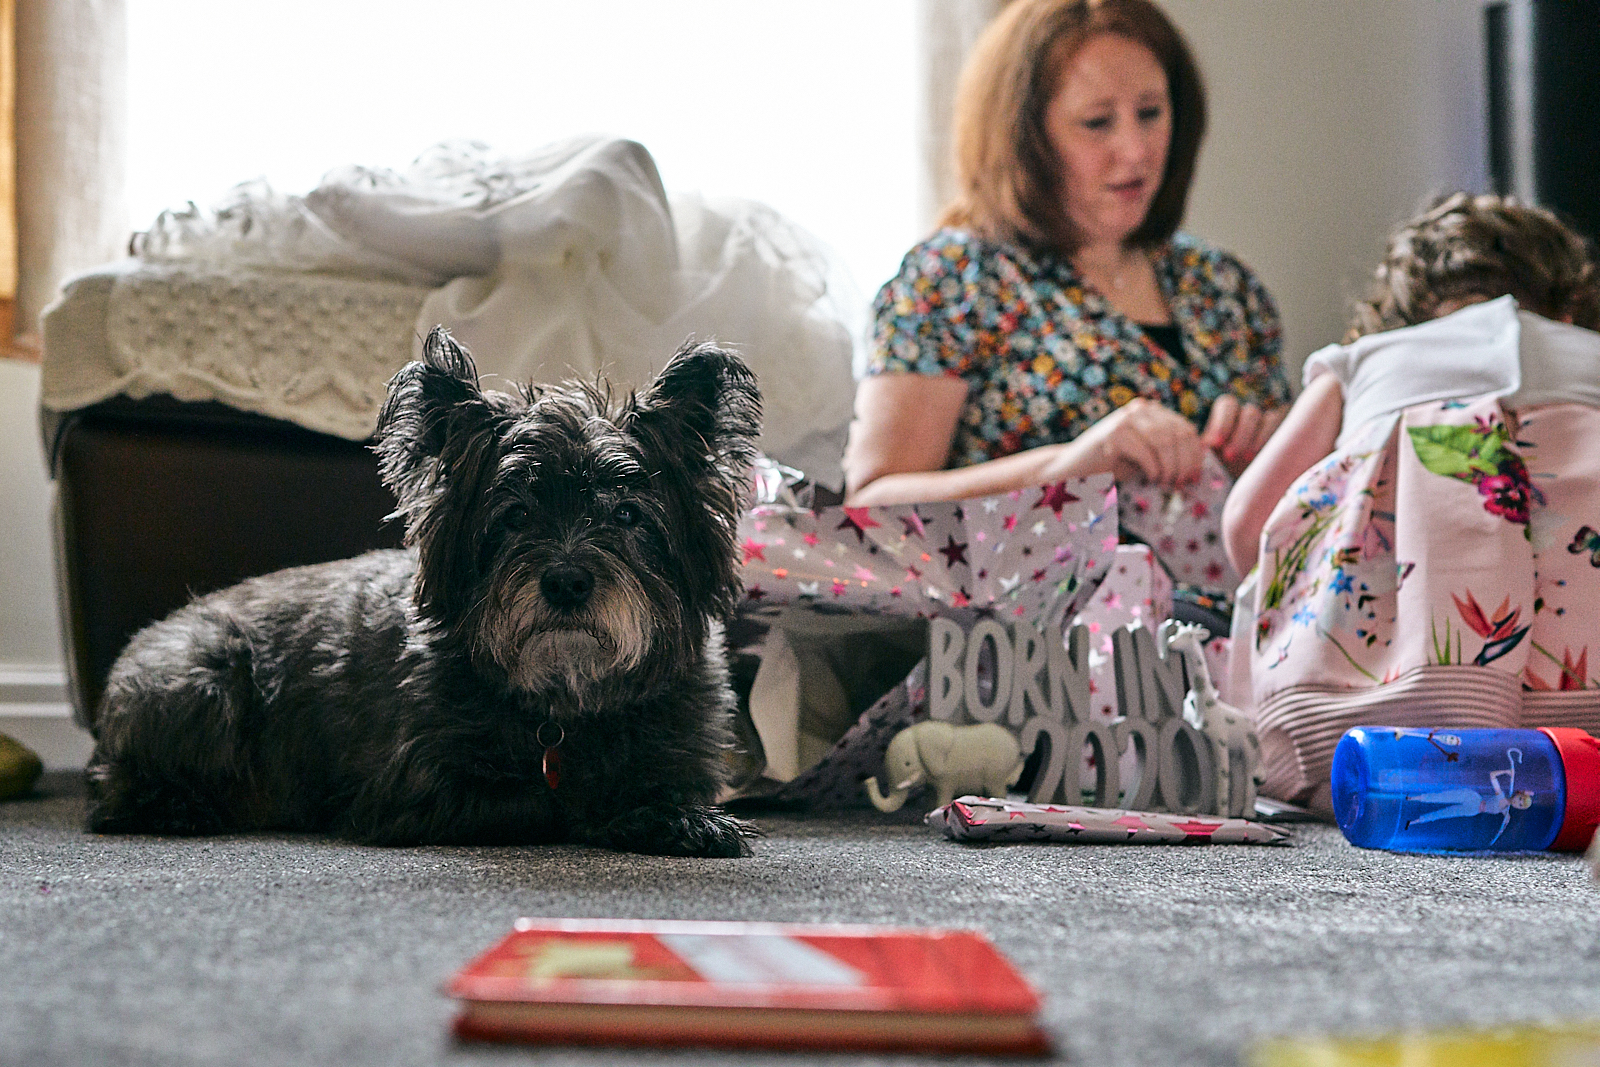 scotty dog stares at photographer amidst family chaos